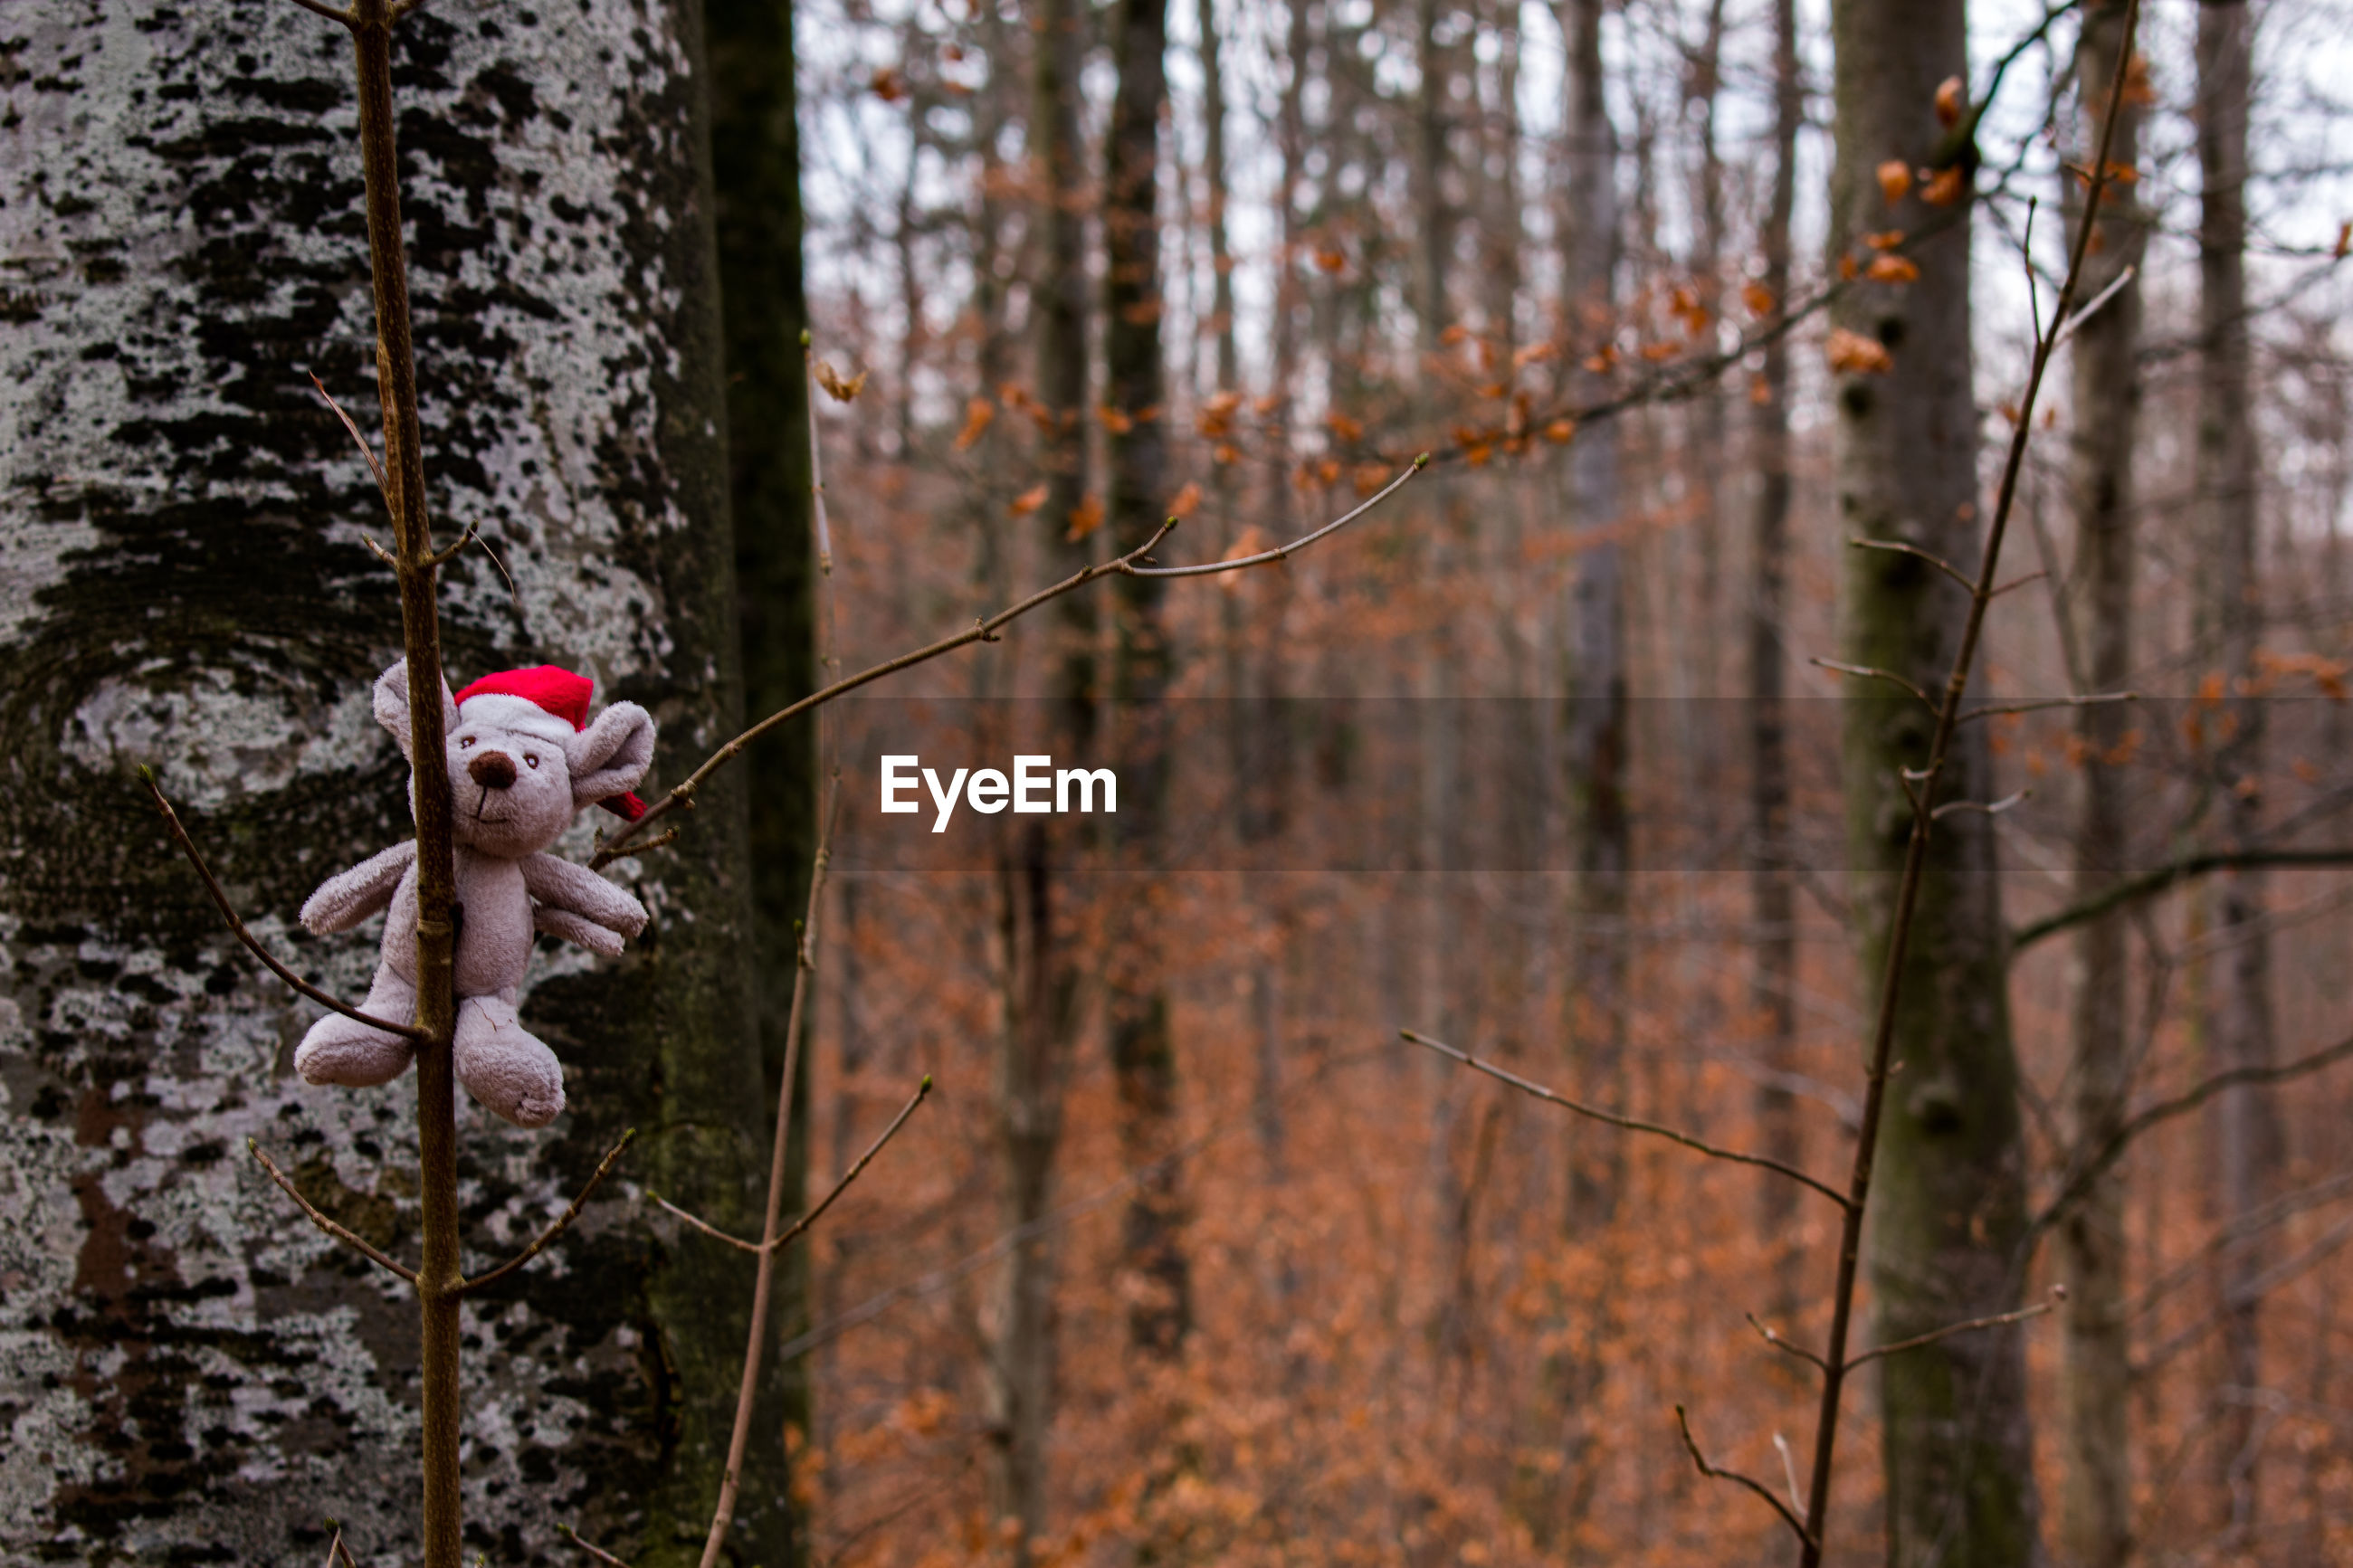 tree, forest, plant, land, tree trunk, trunk, nature, day, woodland, no people, focus on foreground, outdoors, representation, toy, branch, fun, full length